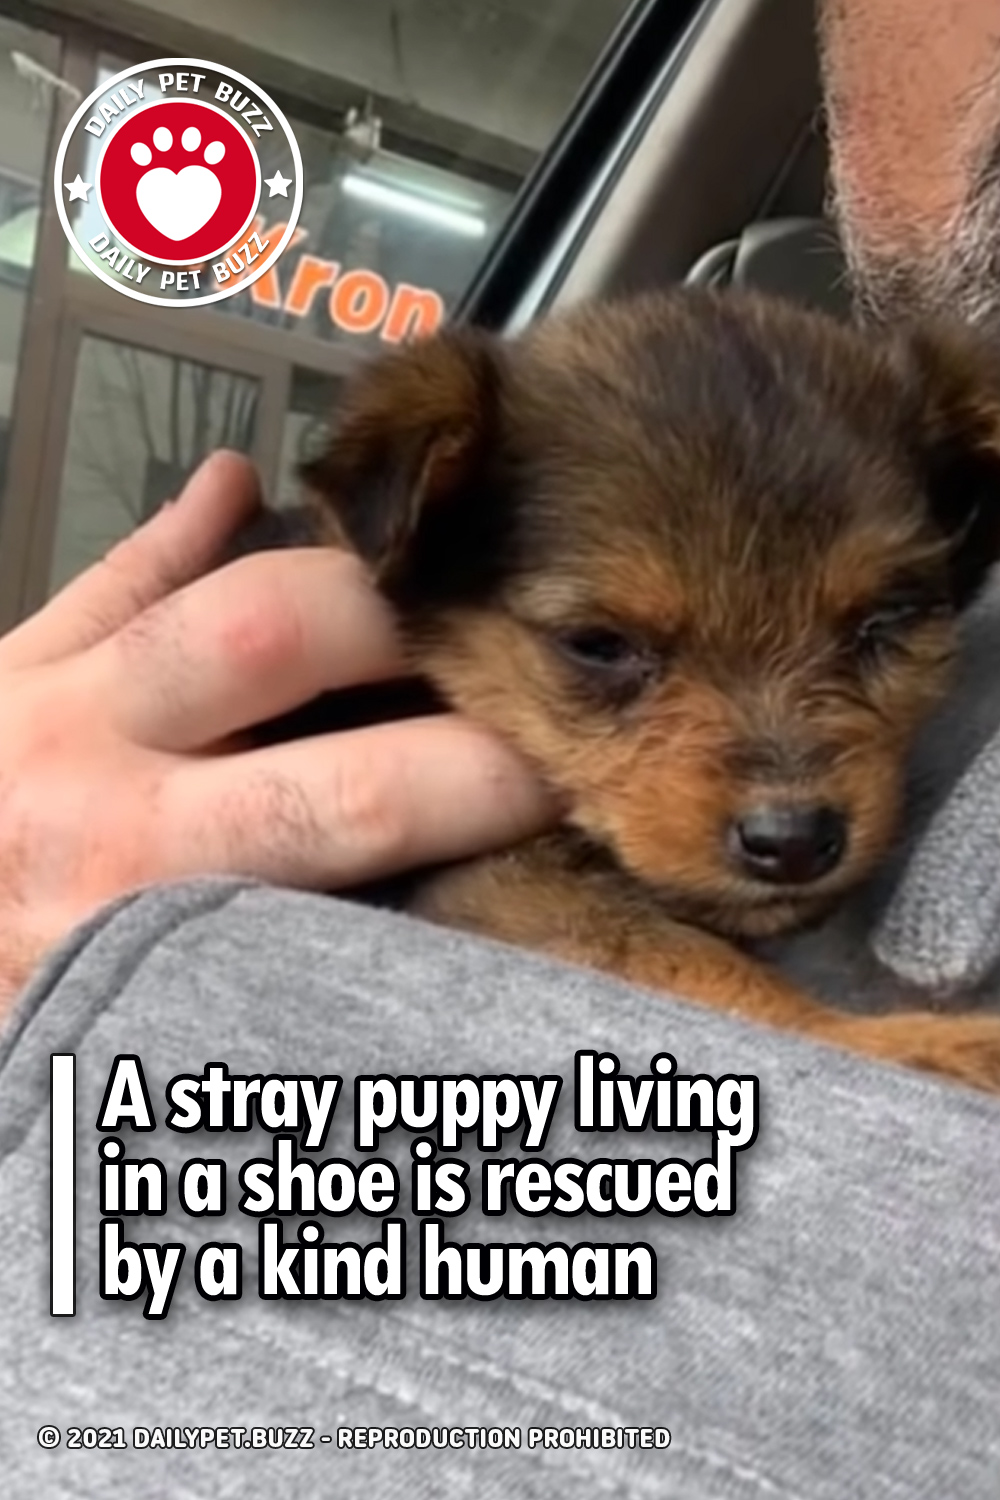 A stray puppy living in a shoe is rescued by a kind human